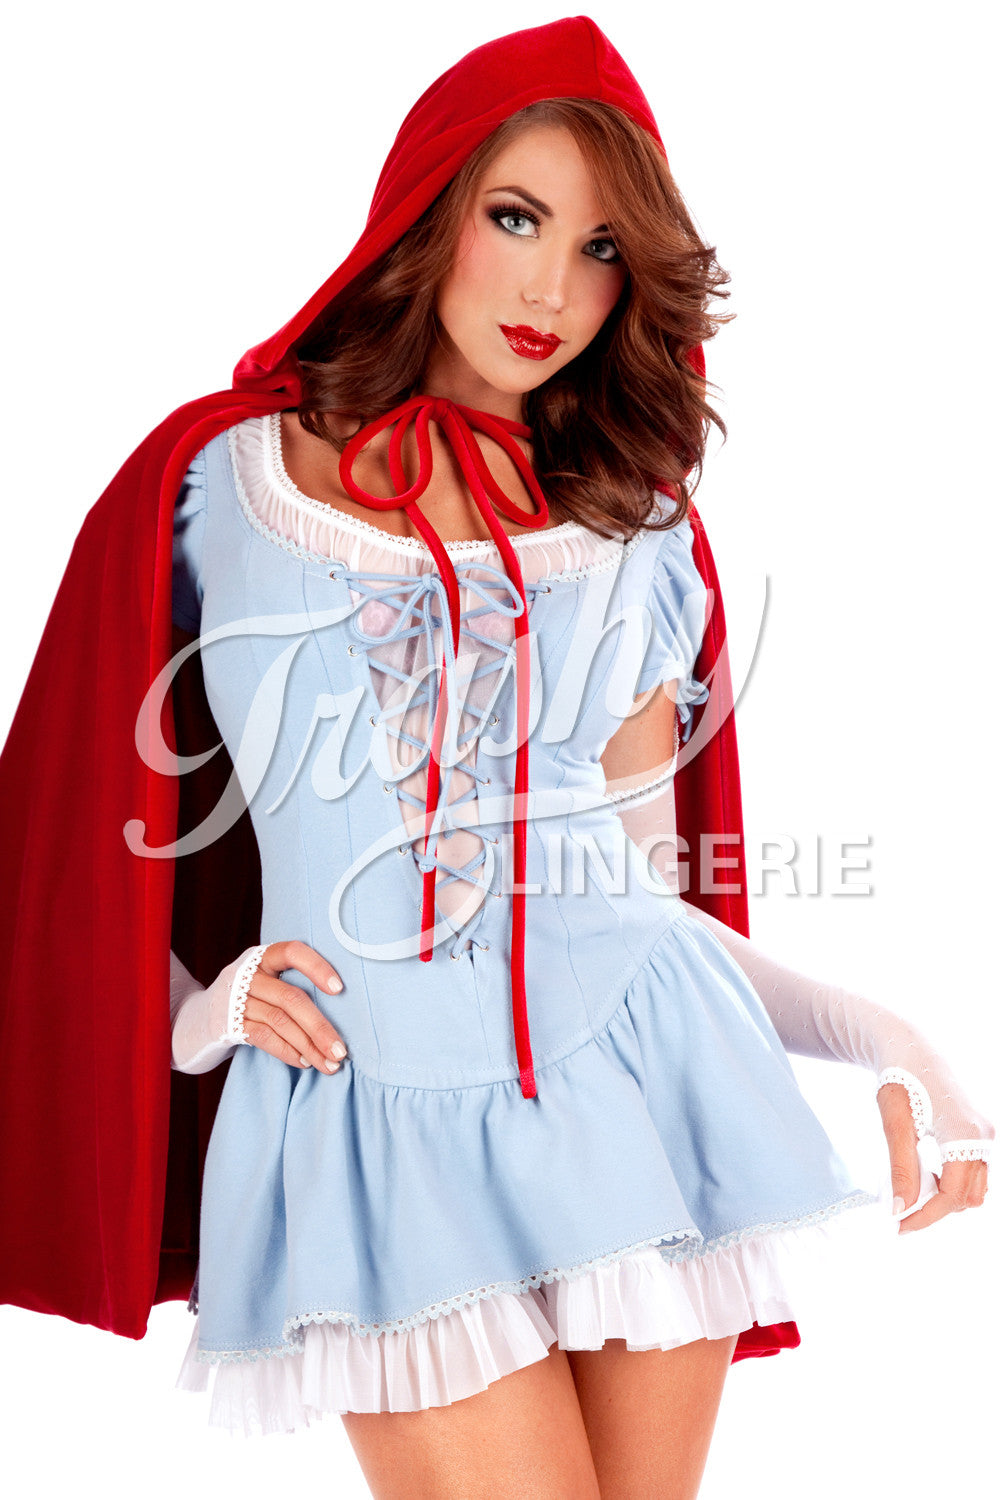 Red riding hood Plus size Halloween apron costume